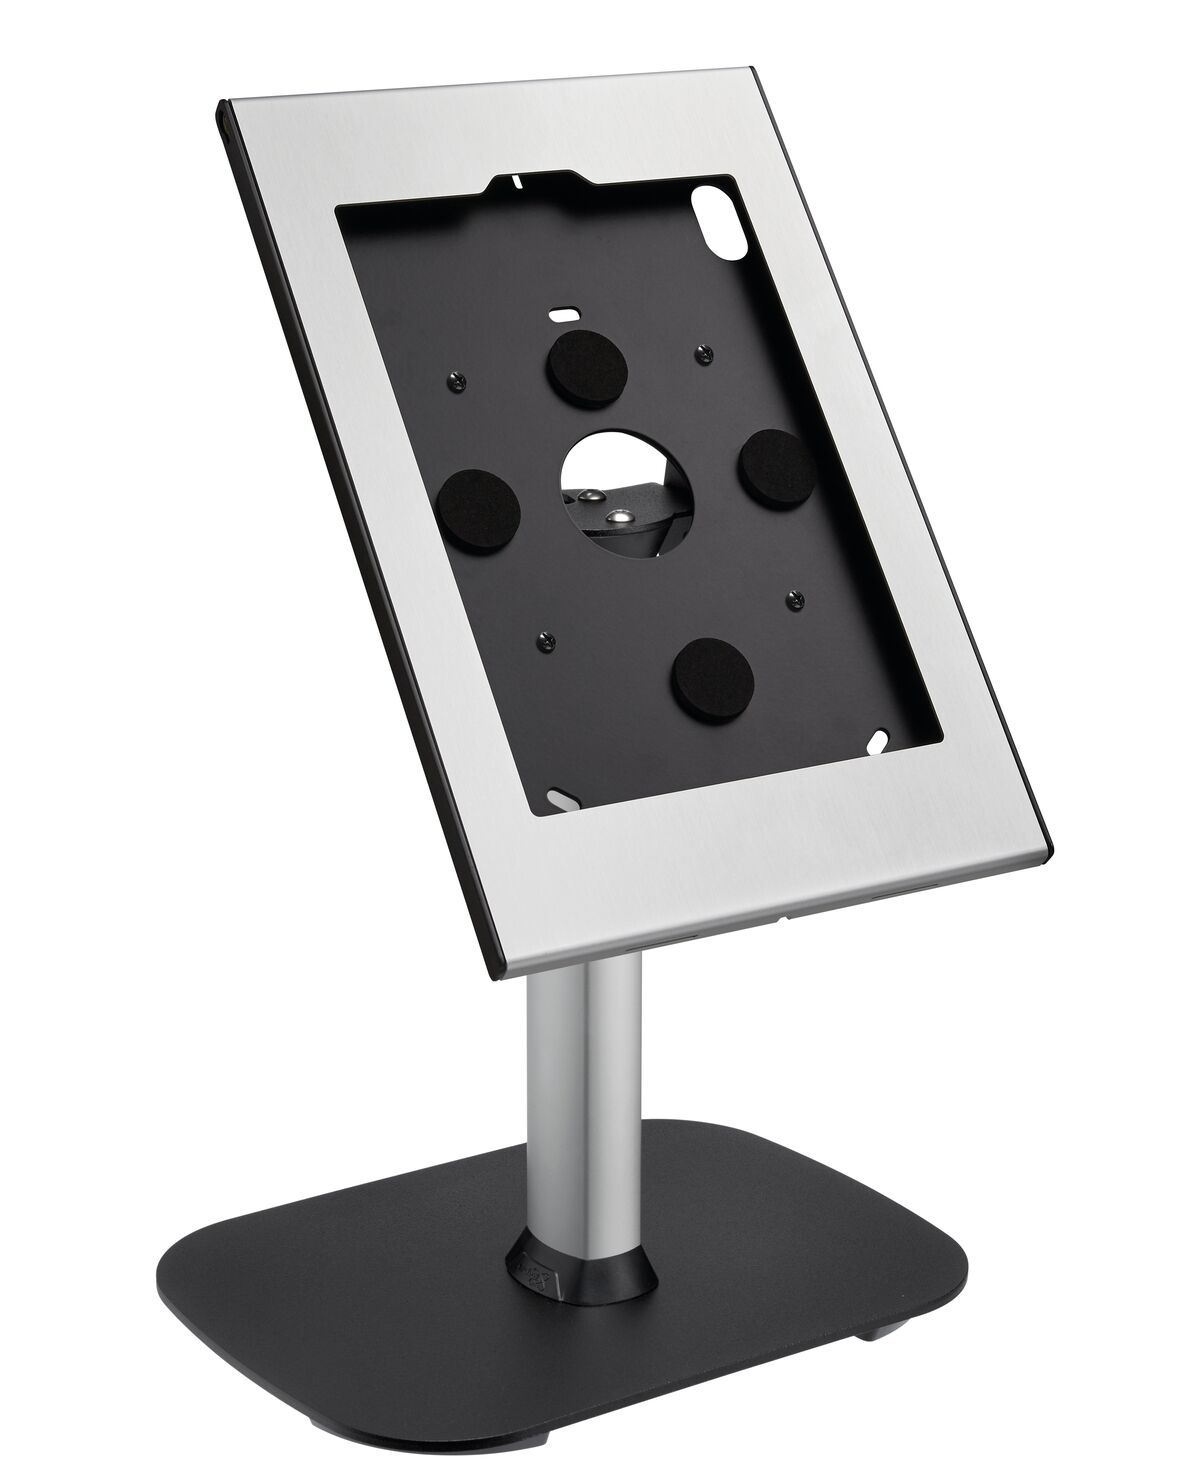 Vogel's PTS 1235 TabLock pour Galaxy Tab S5e (2019) - Application